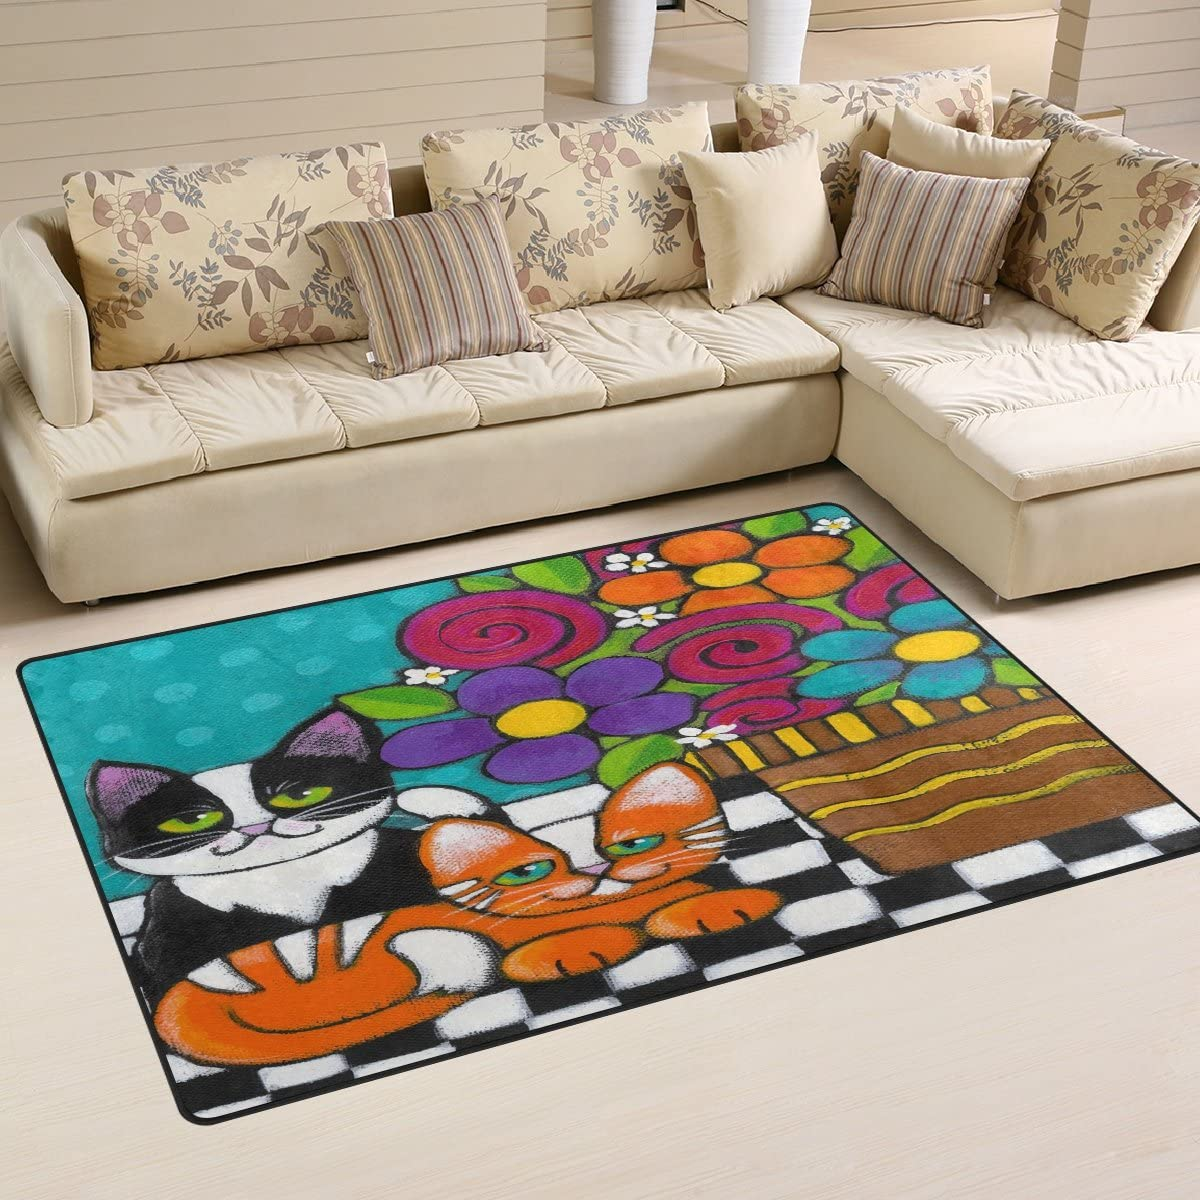 WOZO Hipster Cat Kitten Floral Print Area Rug Rugs Non-Slip Floor Mat Doormats for Living Room Bedroom 60 x 39 inches